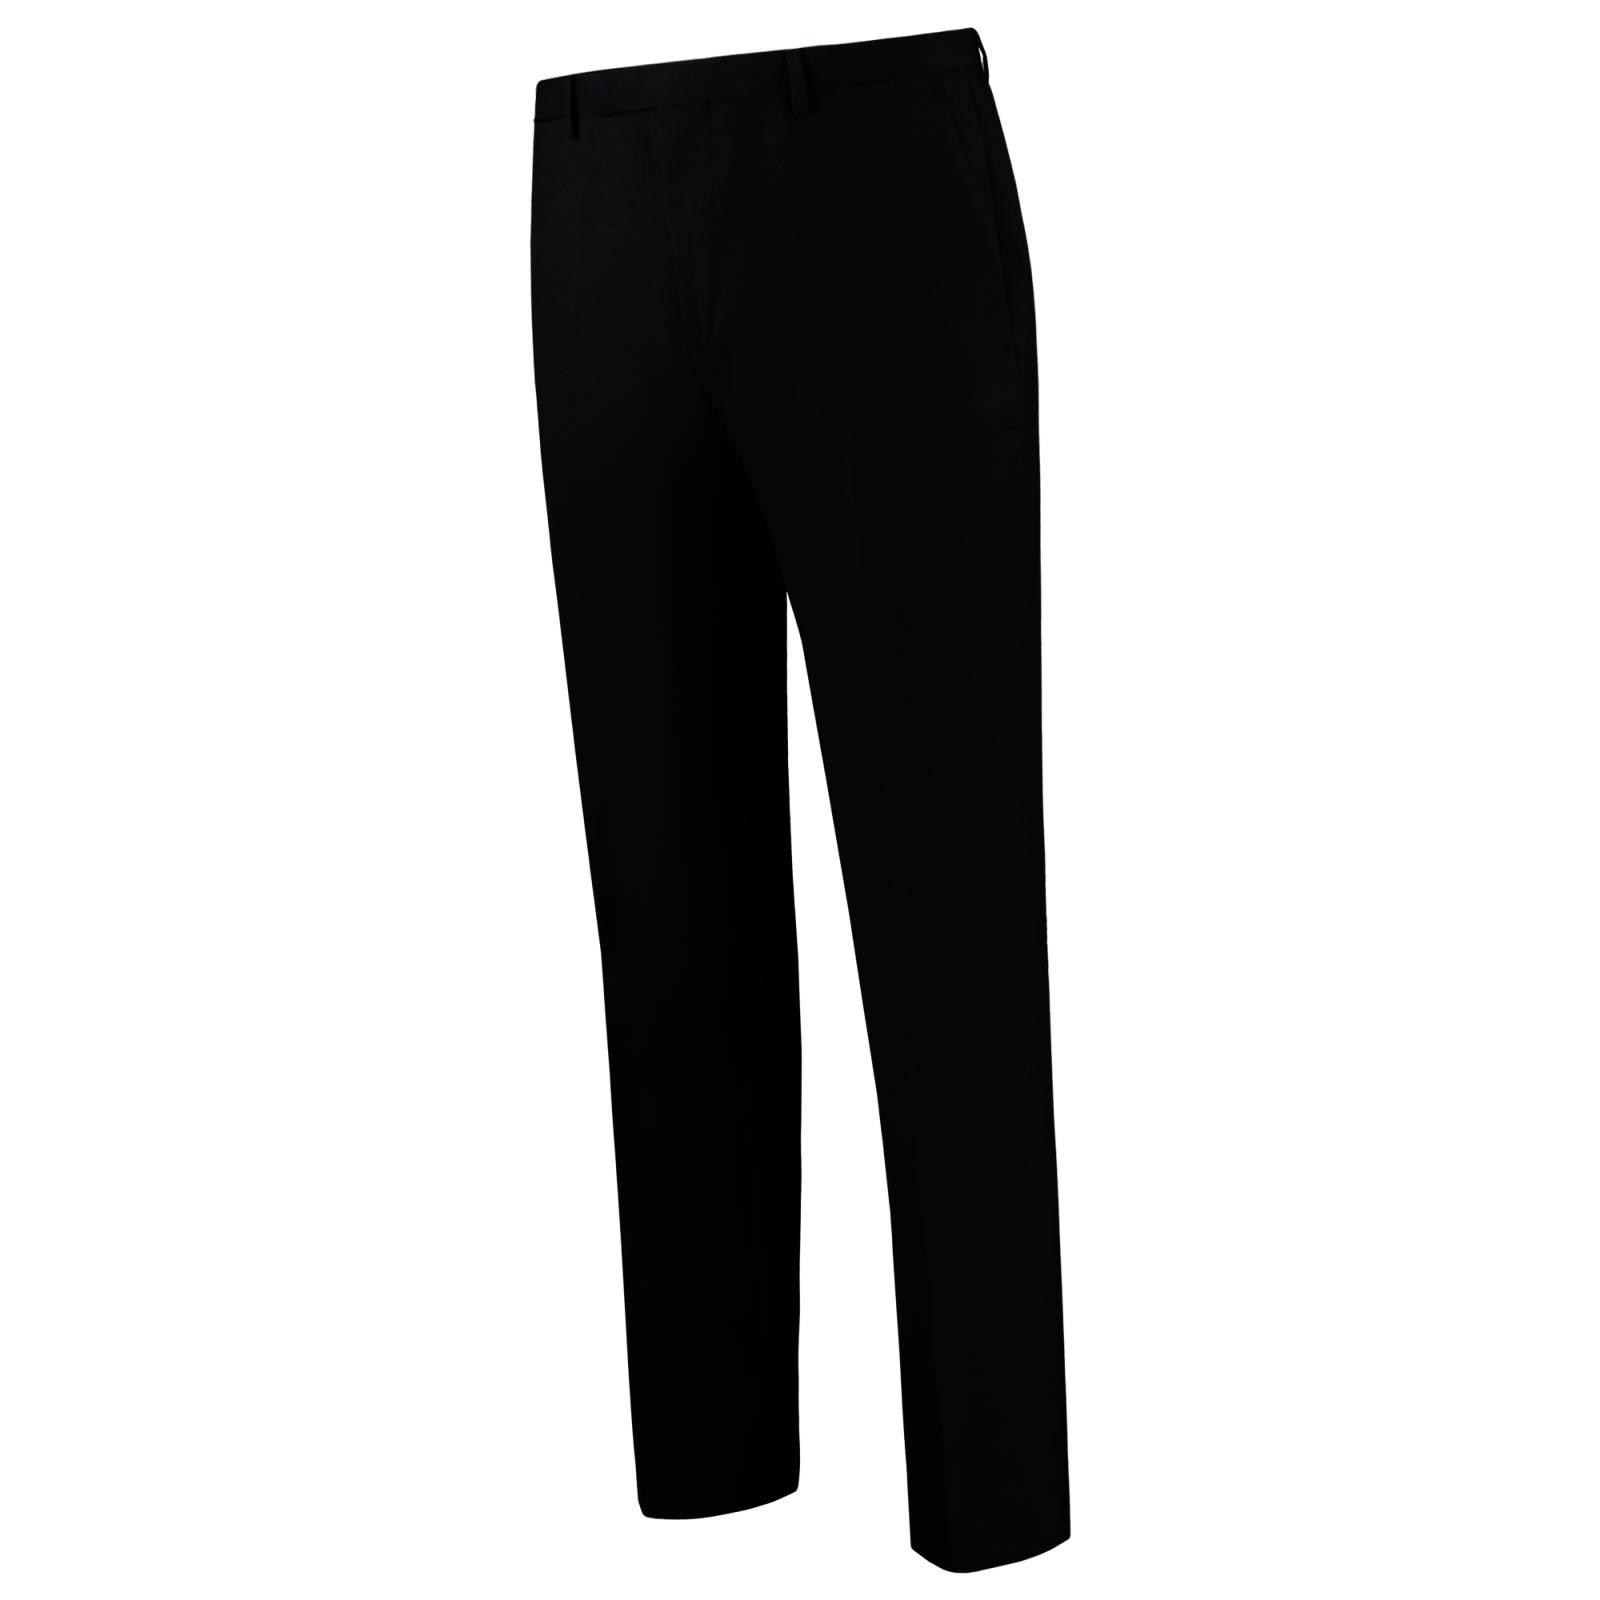 <A HREF='//shop.woltex.nl?_globalsearch=Tricorp' TARGET='_TOP'>Tricorp</A>